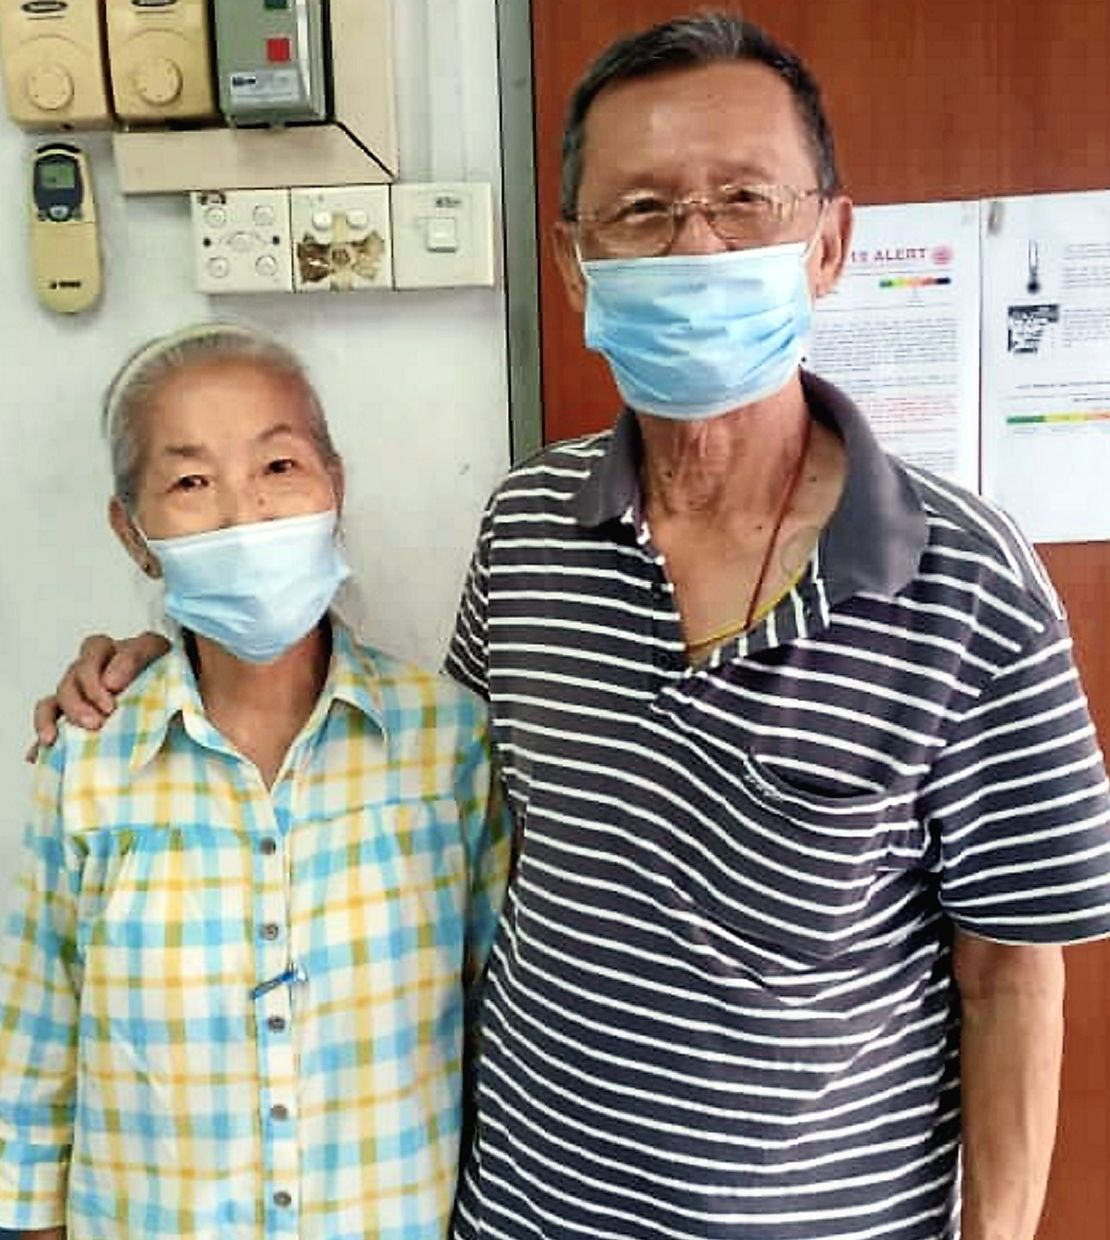 Johor MB is calling on state representatives to help senior citizens like Looi (left) and her husband Ong to get vaccinated.